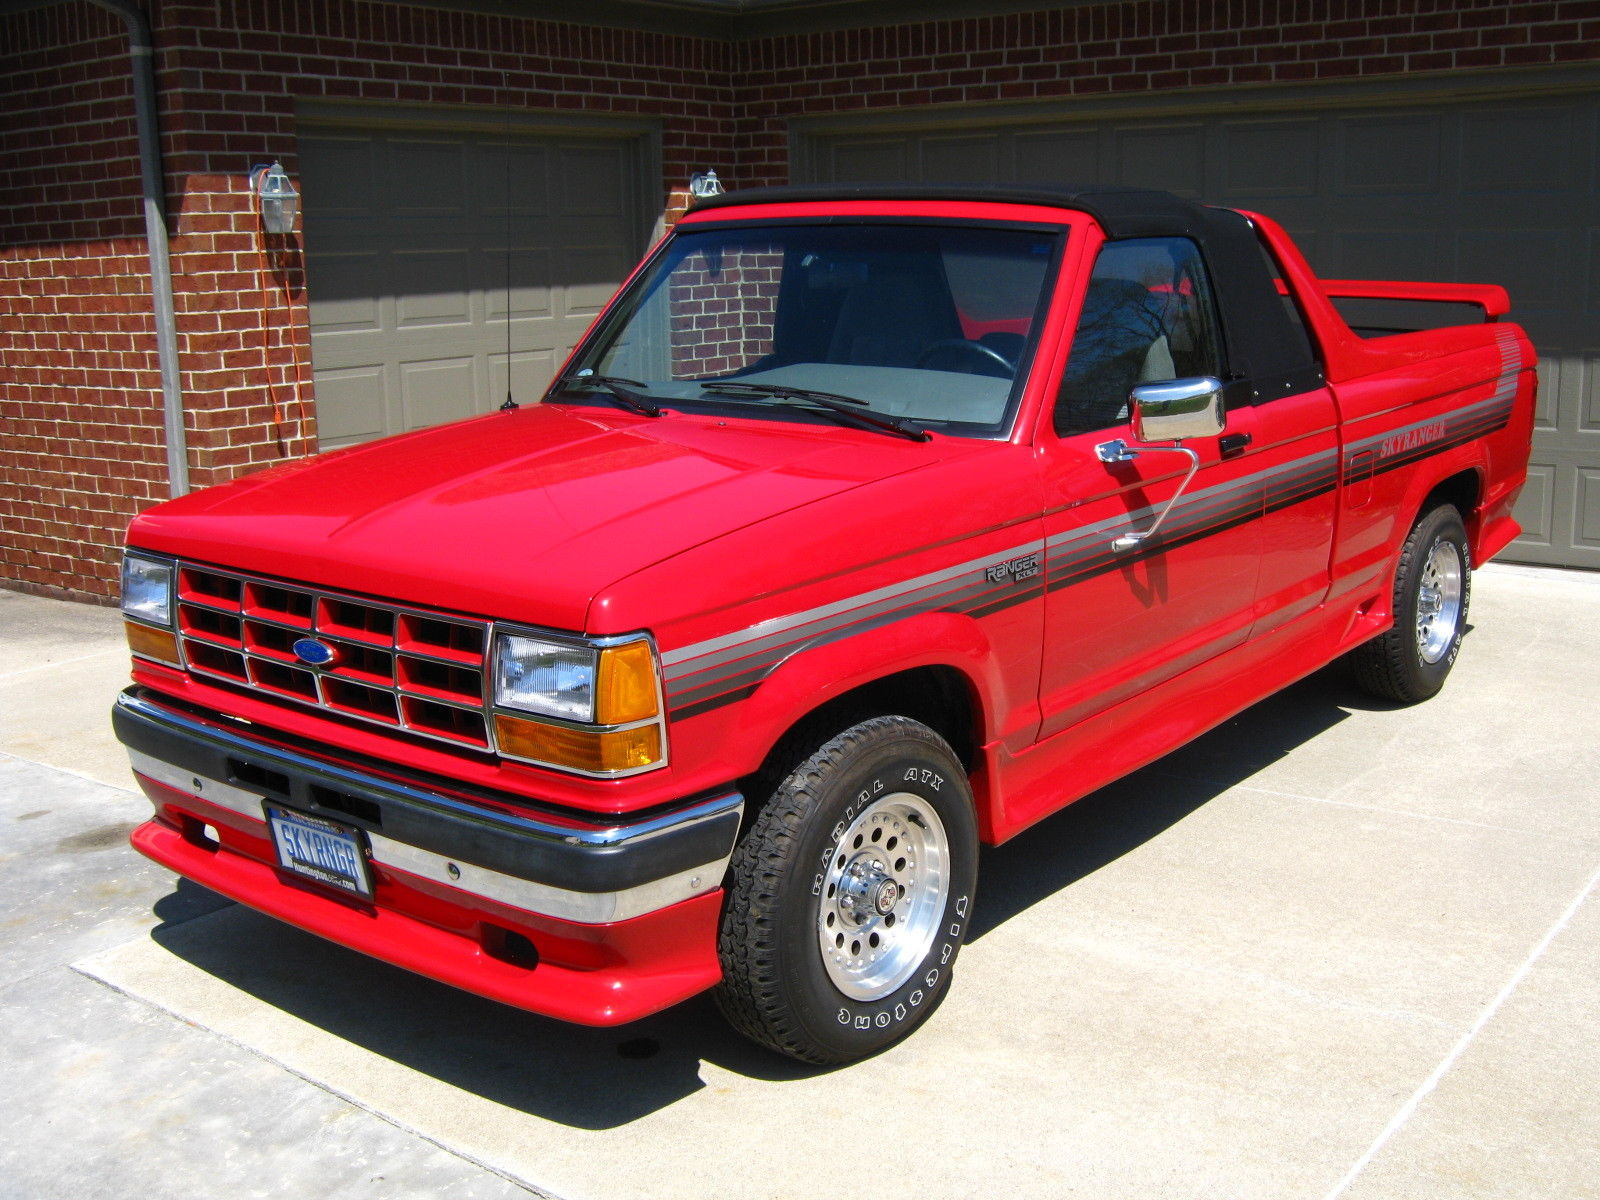 this ford skyranger convertible is a rare pickup truck